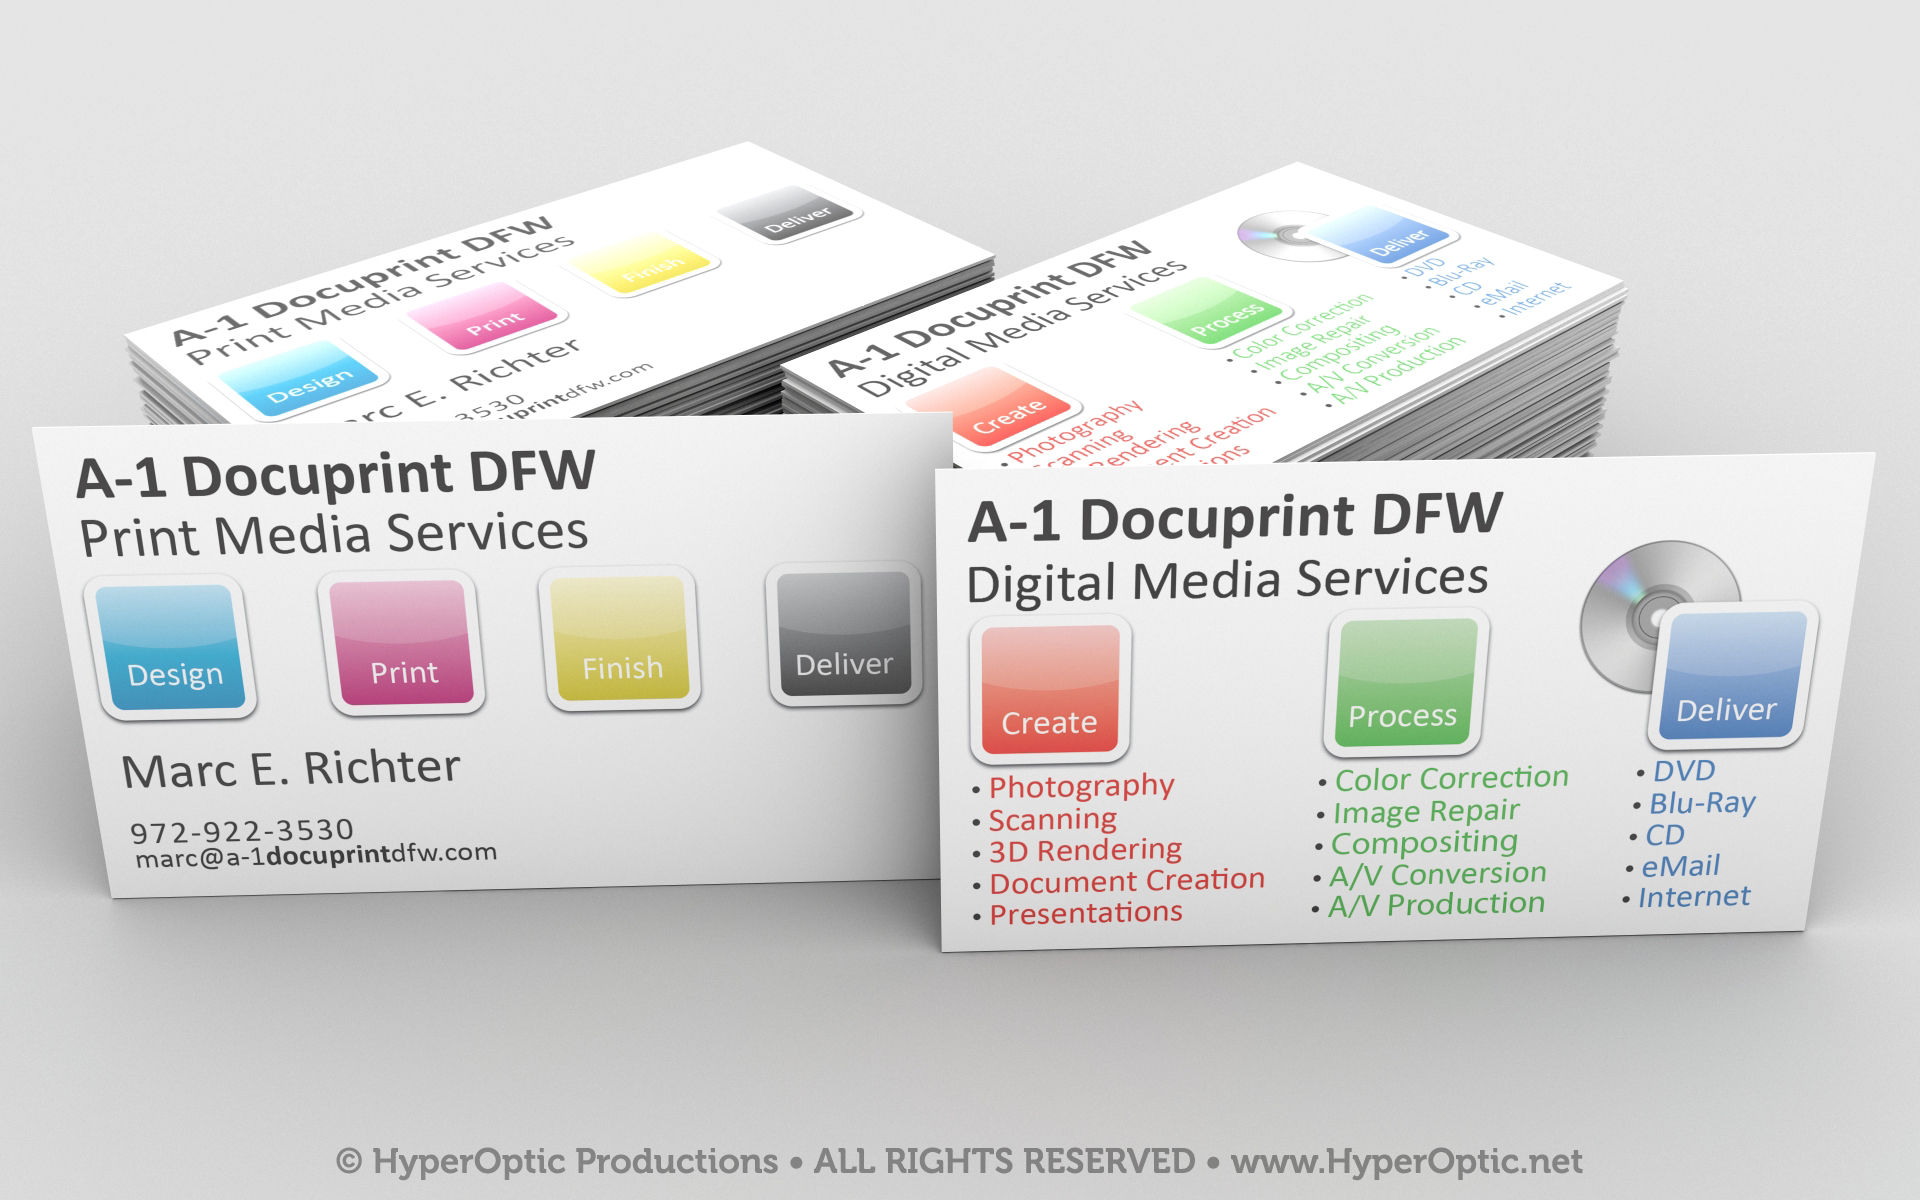 Business-Card-Sample-Visualization---A1-Docuprint-DFW-watermarked